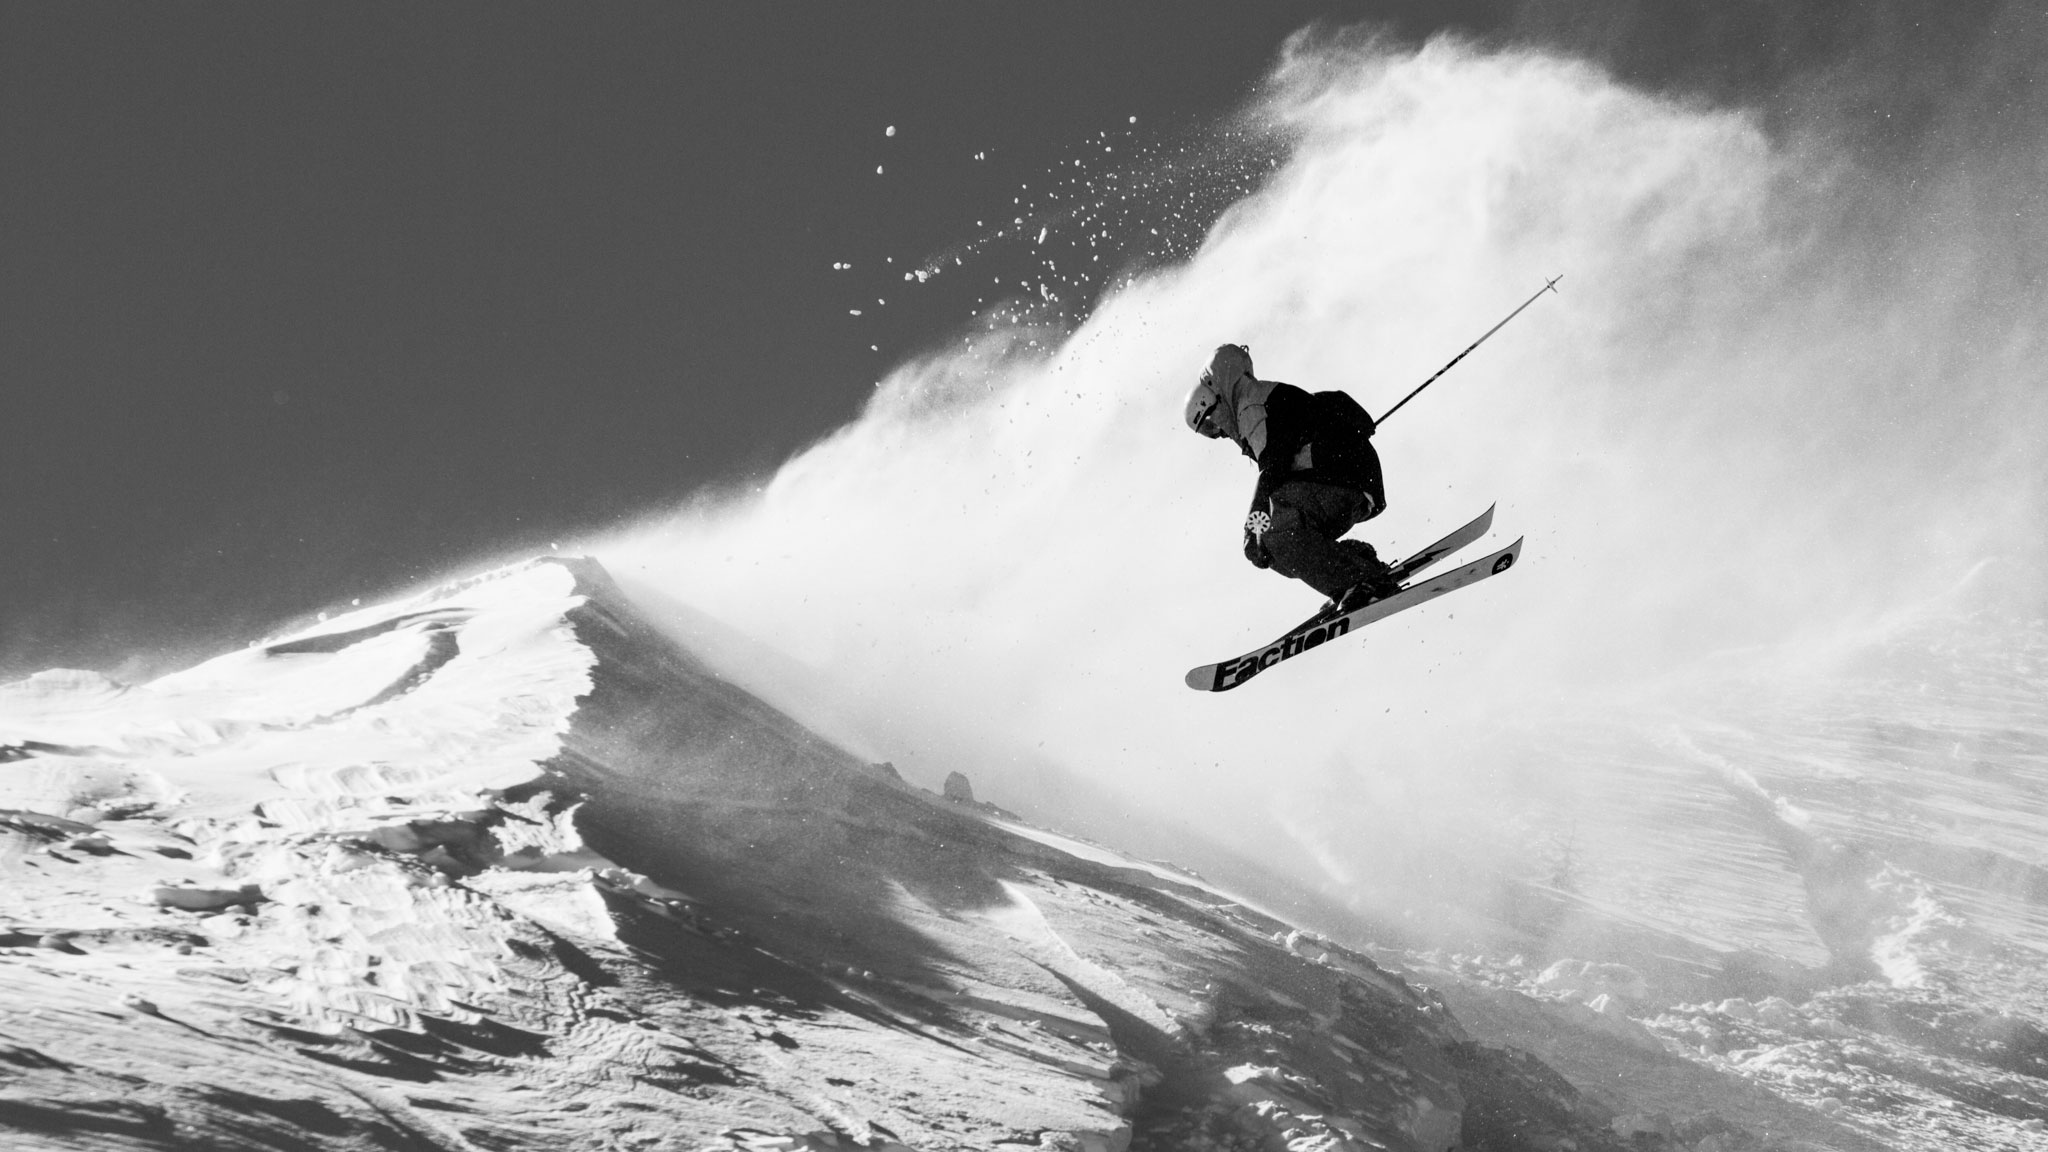 Ian Borgeson, age 20, will be the youngest American competing on the Freeride World Tour this season.